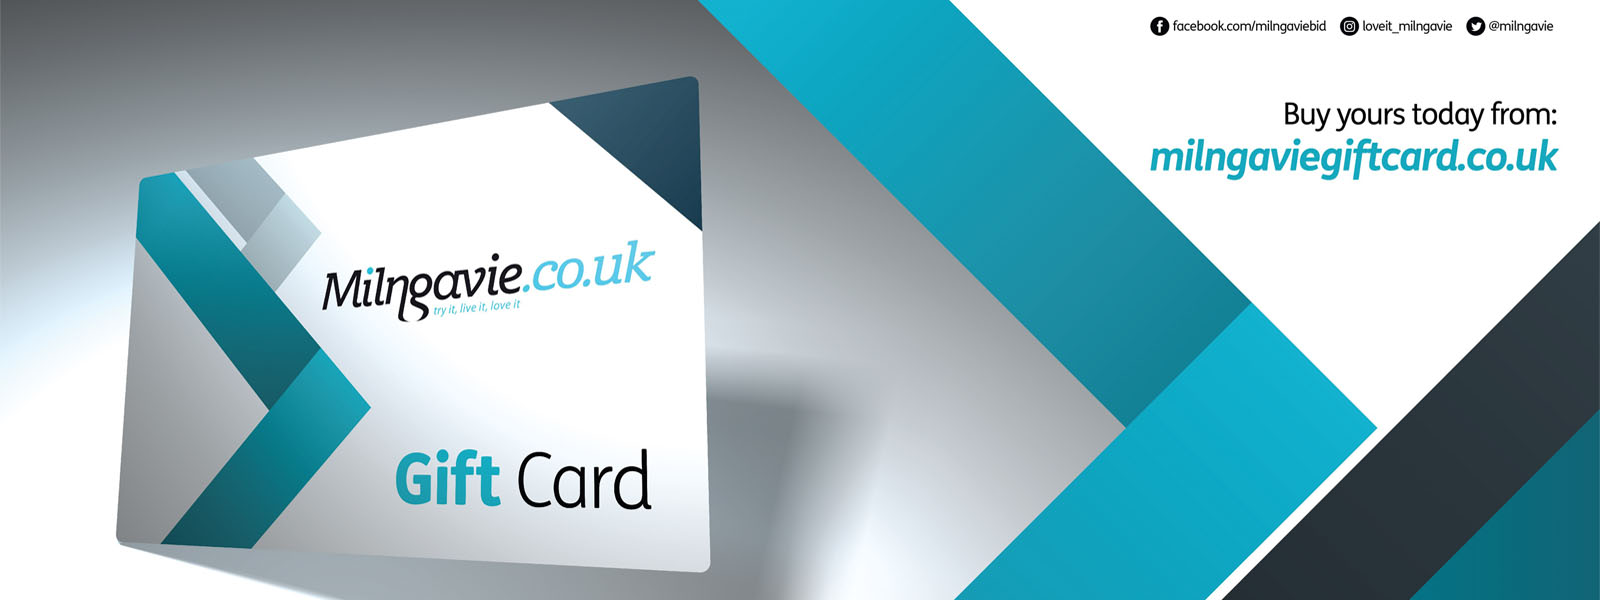 Milngavie Gift Card